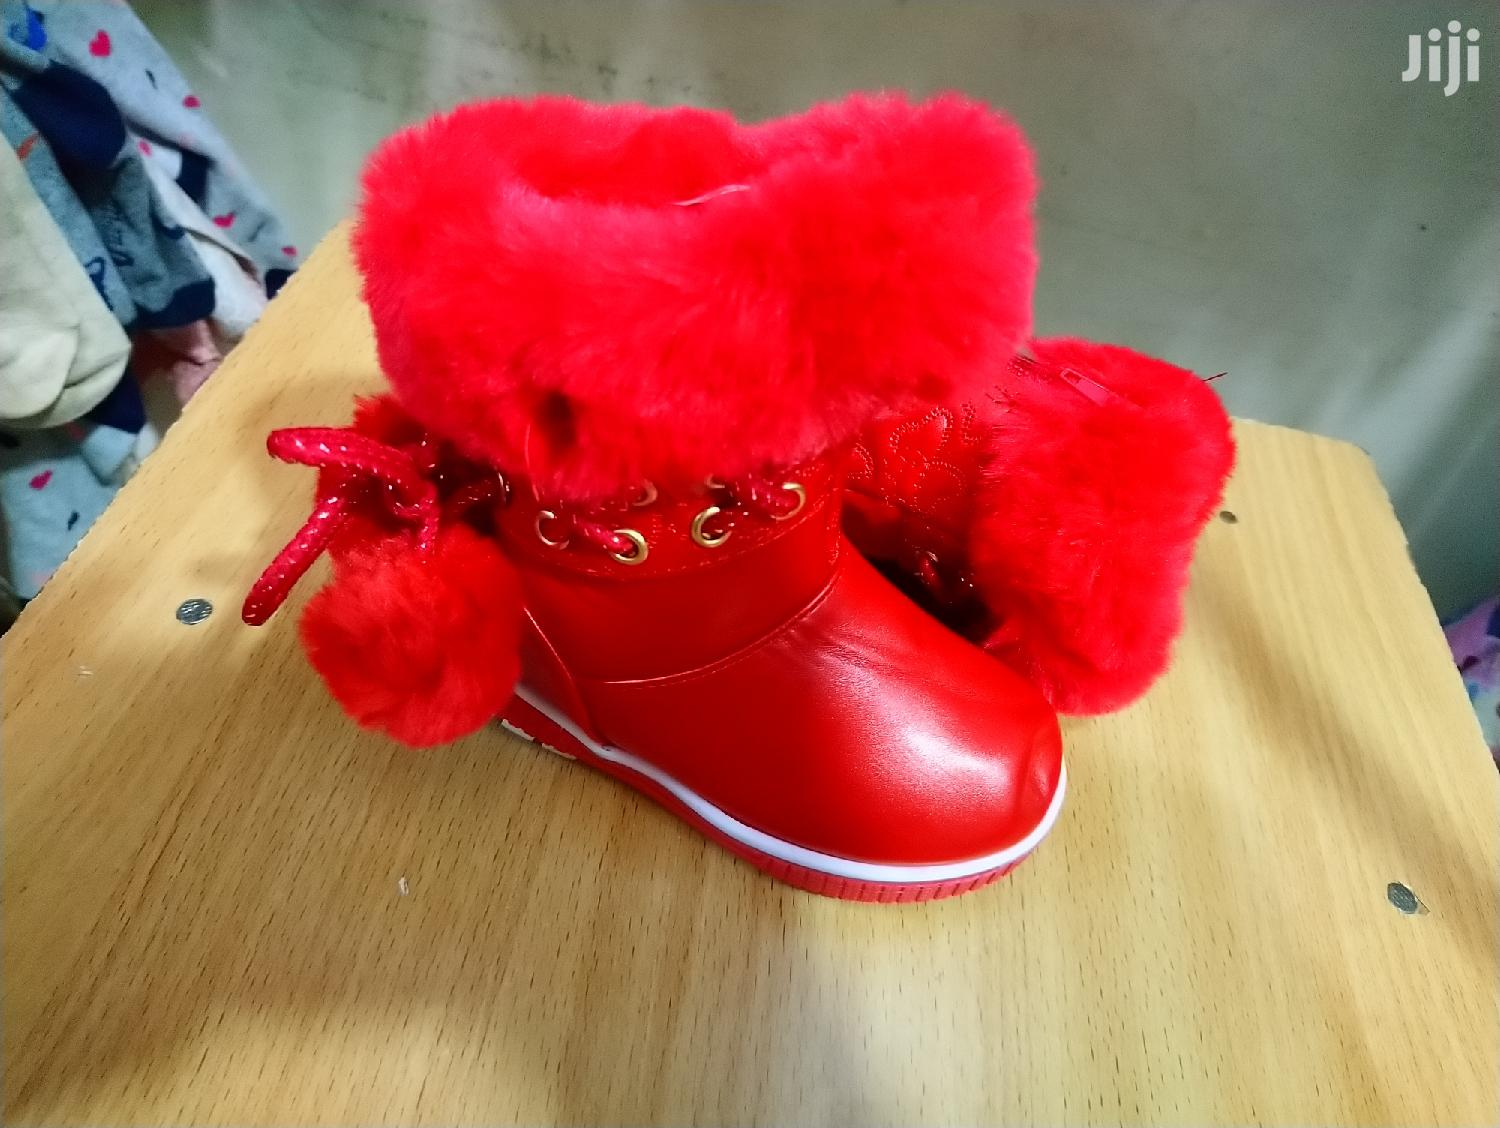 Archive: Baby's Boot